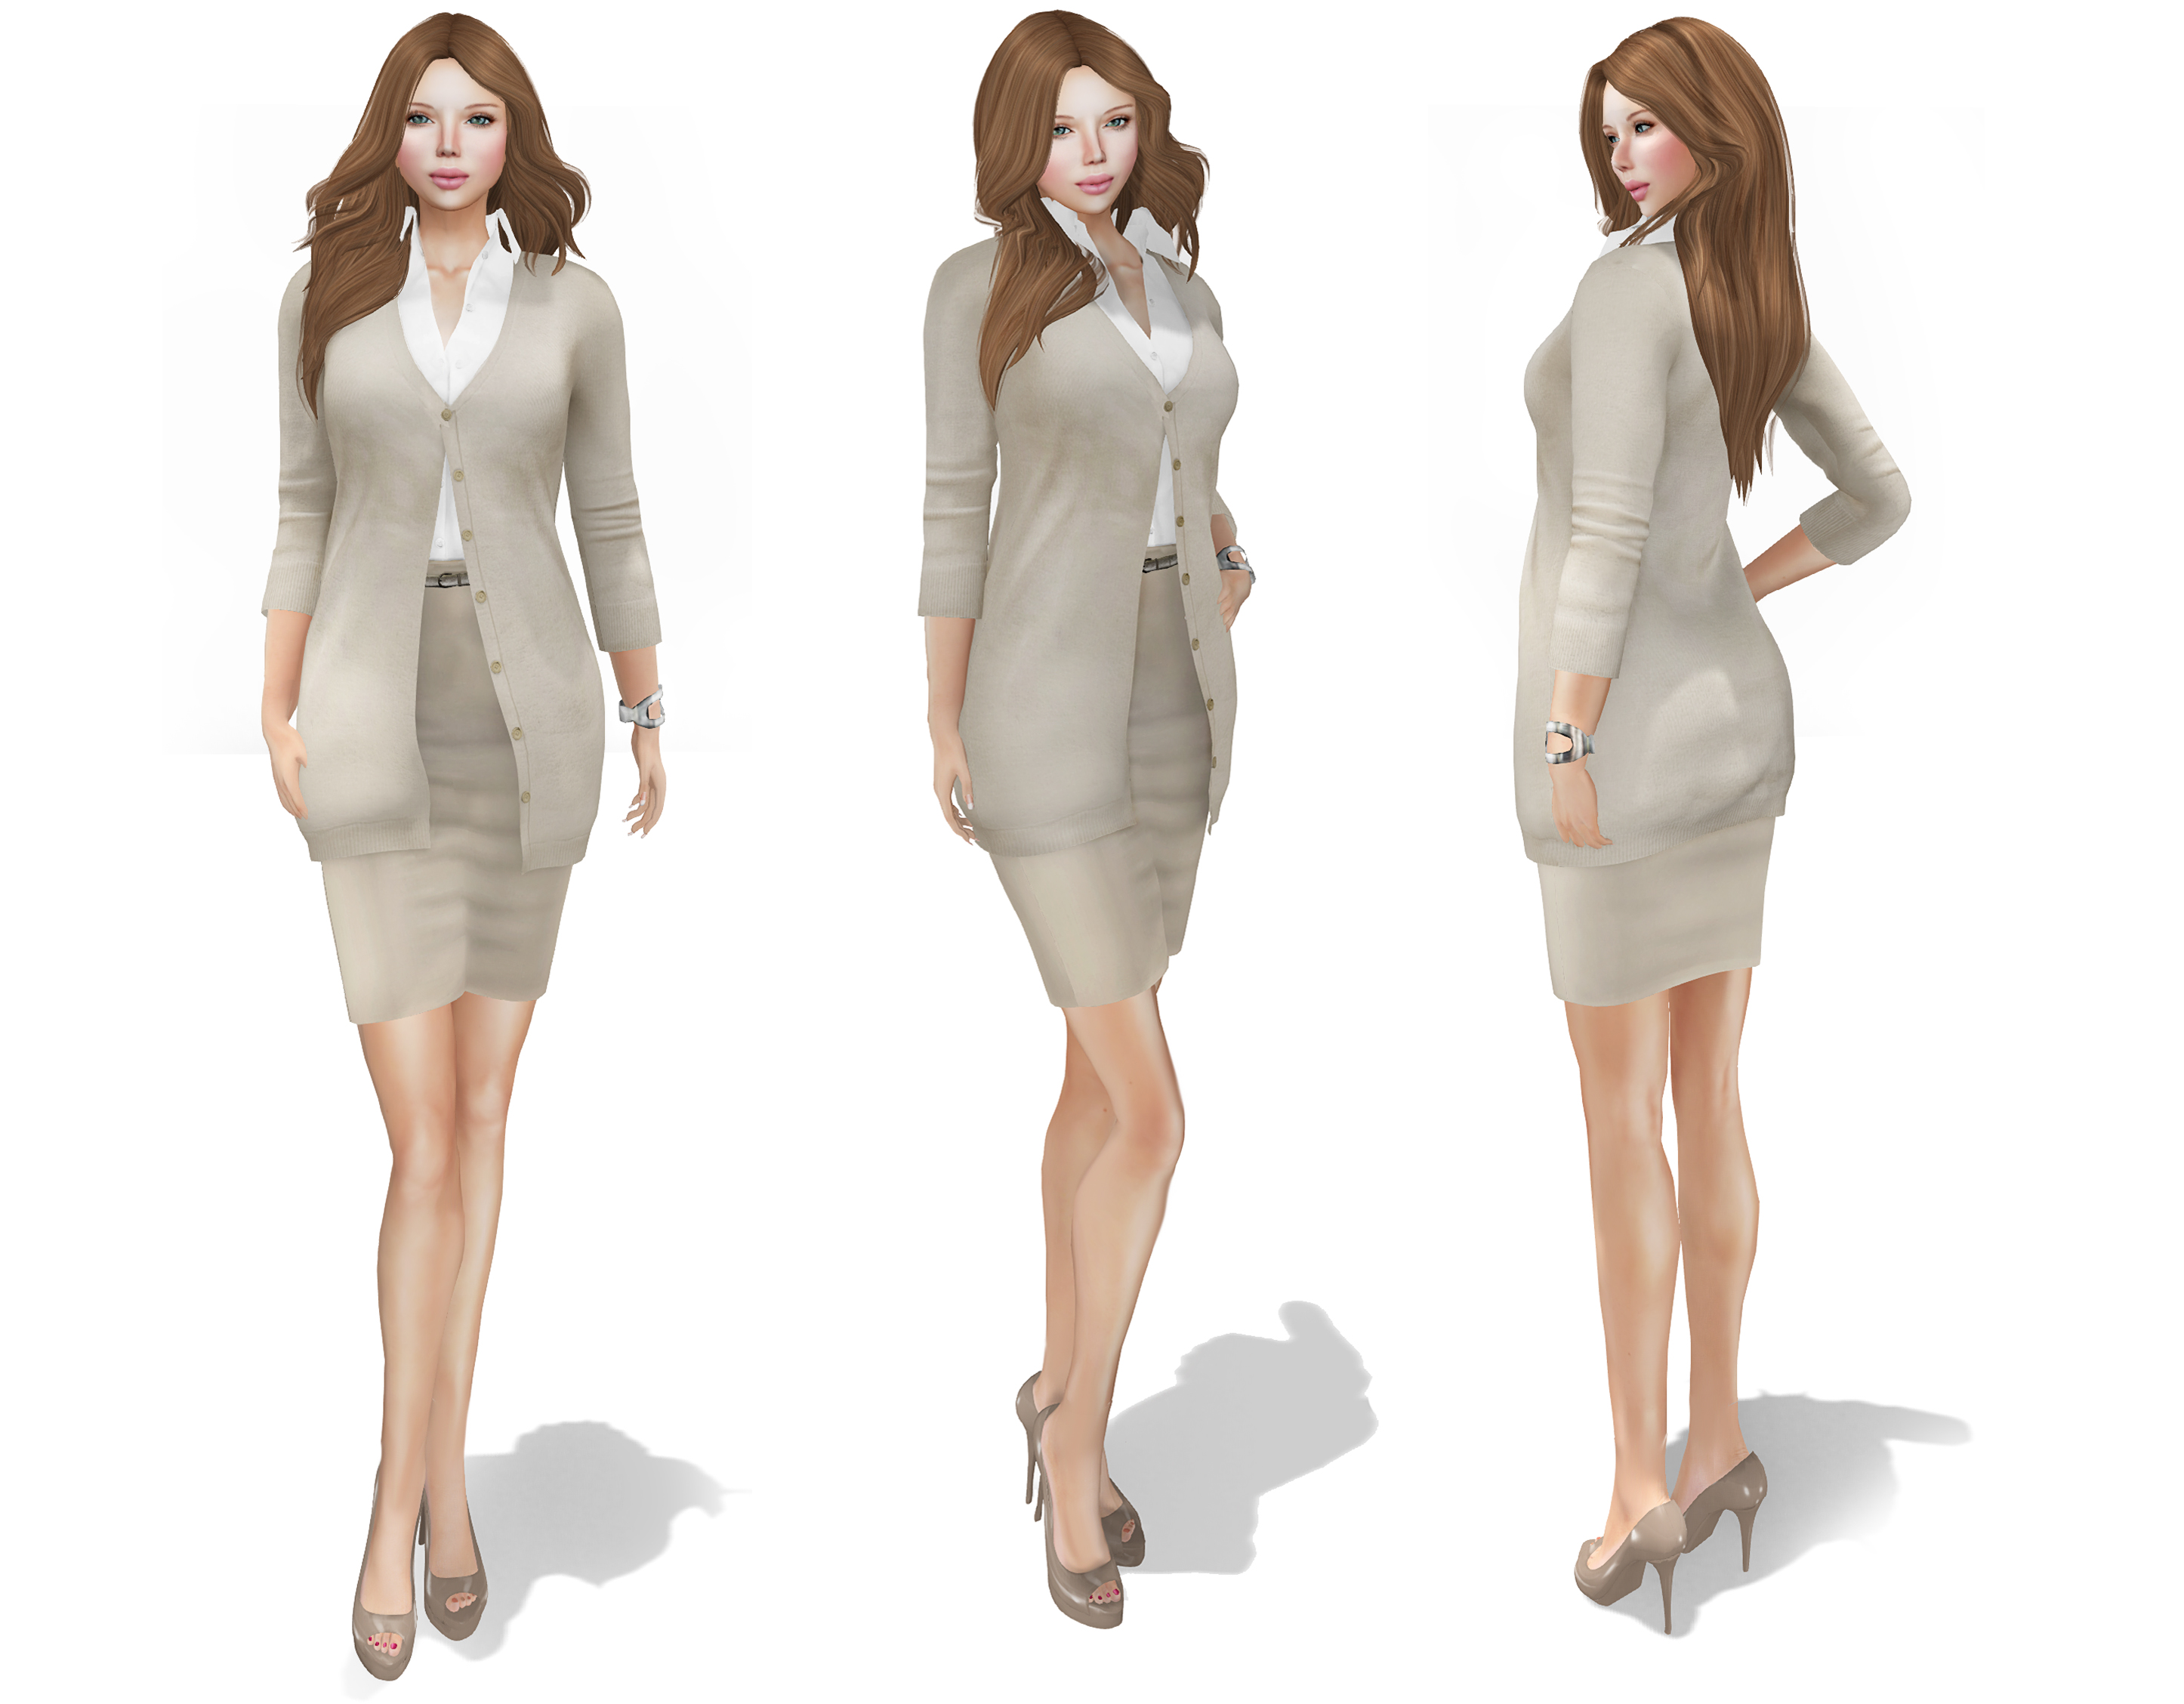 HR Womens Business Cardigan Outfit